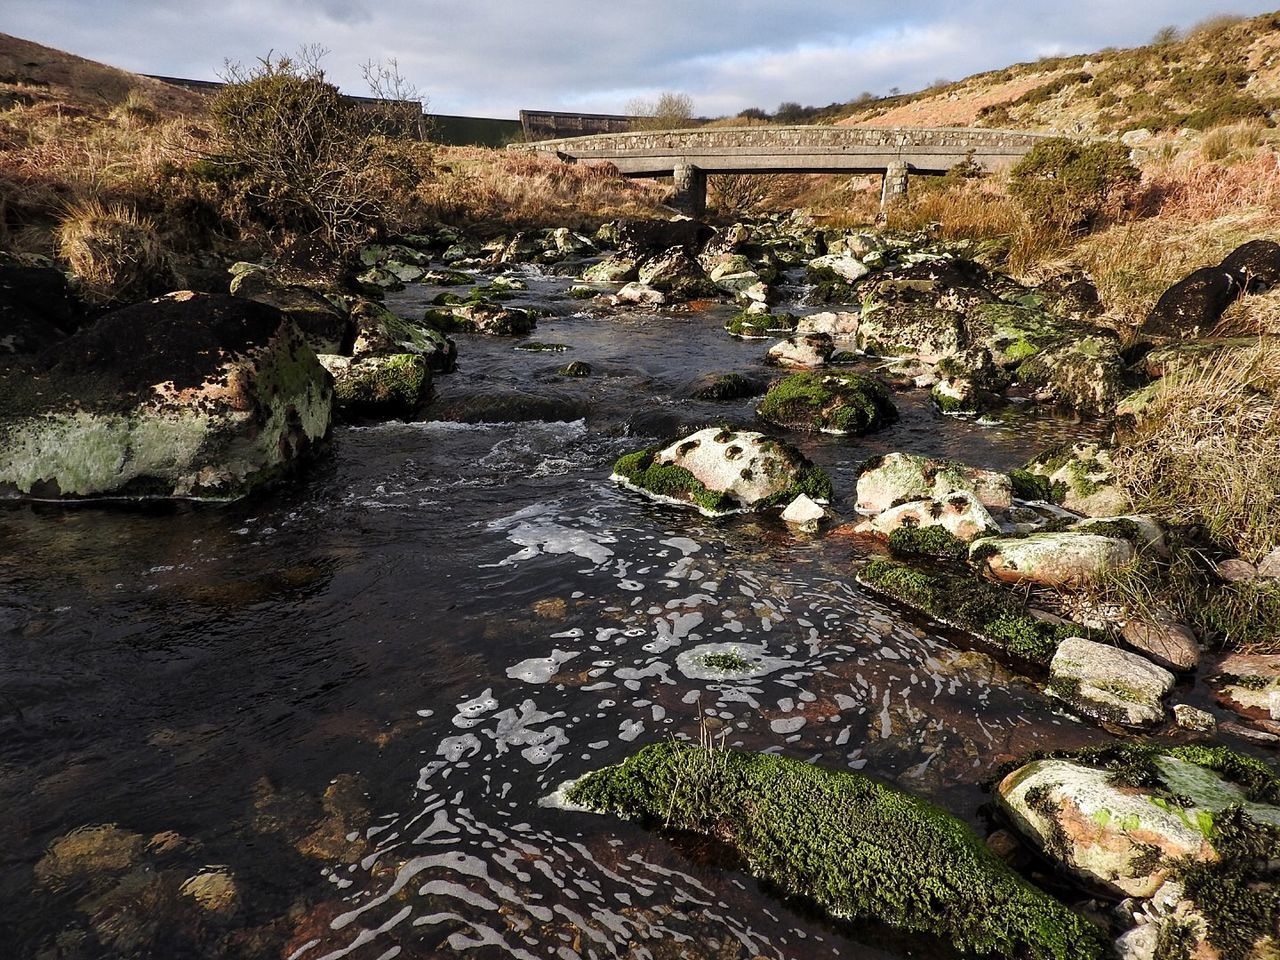 Avon Avon Dam Bridge Dam Day Devon Elevated View Flowing Froth Grass Moss Nature No People No People, Outdoors River River Avon Rock Stone Stream Walk Warm Water Water Flowing Down Water Flowing Over Rocks